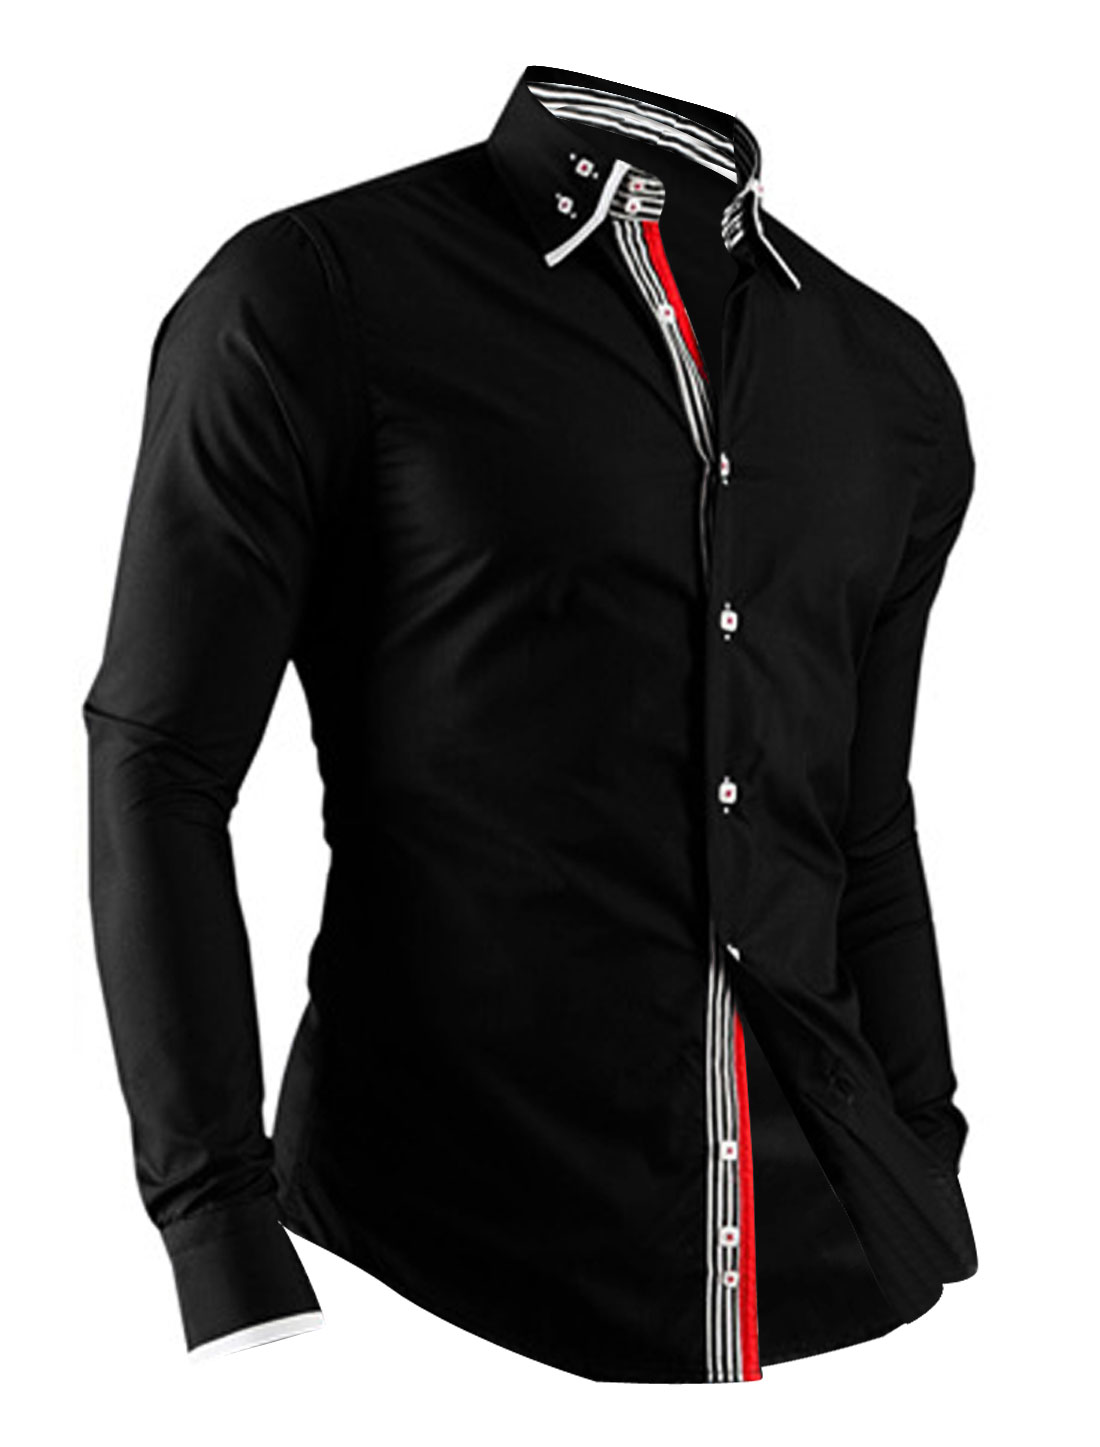 Men Long Sleeve Button Closure Buttons Cuffs Casual Shirt Black M